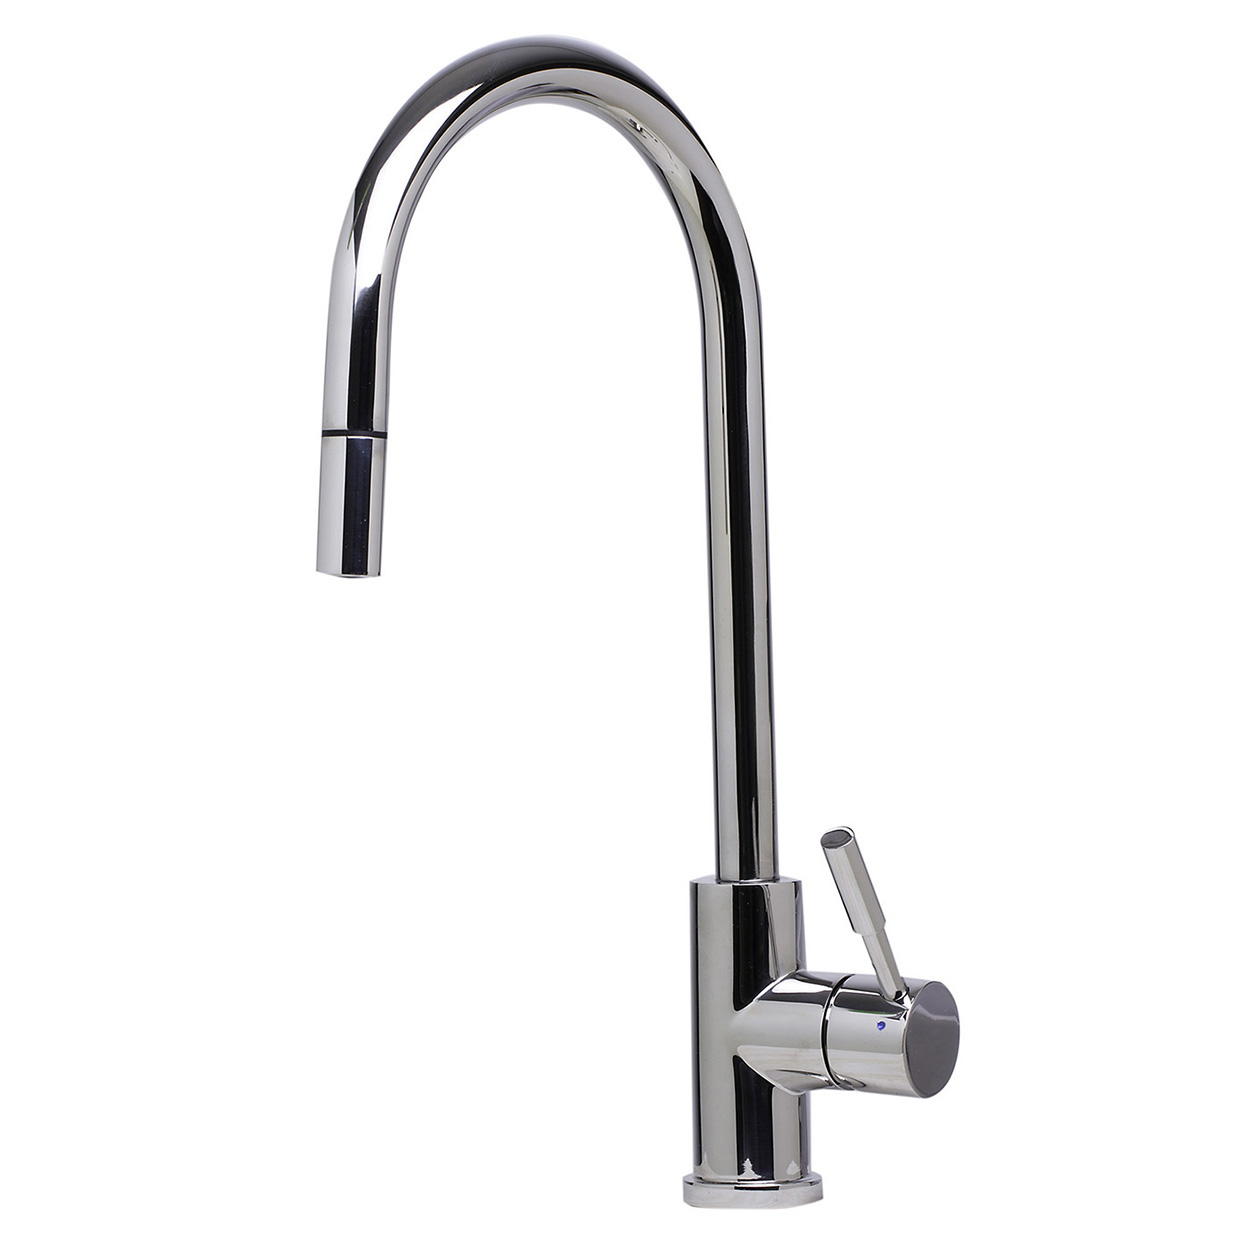 kitchen faucets stainless steel best appliances reviews bath4all alfi brand ab2028 pss solid polished